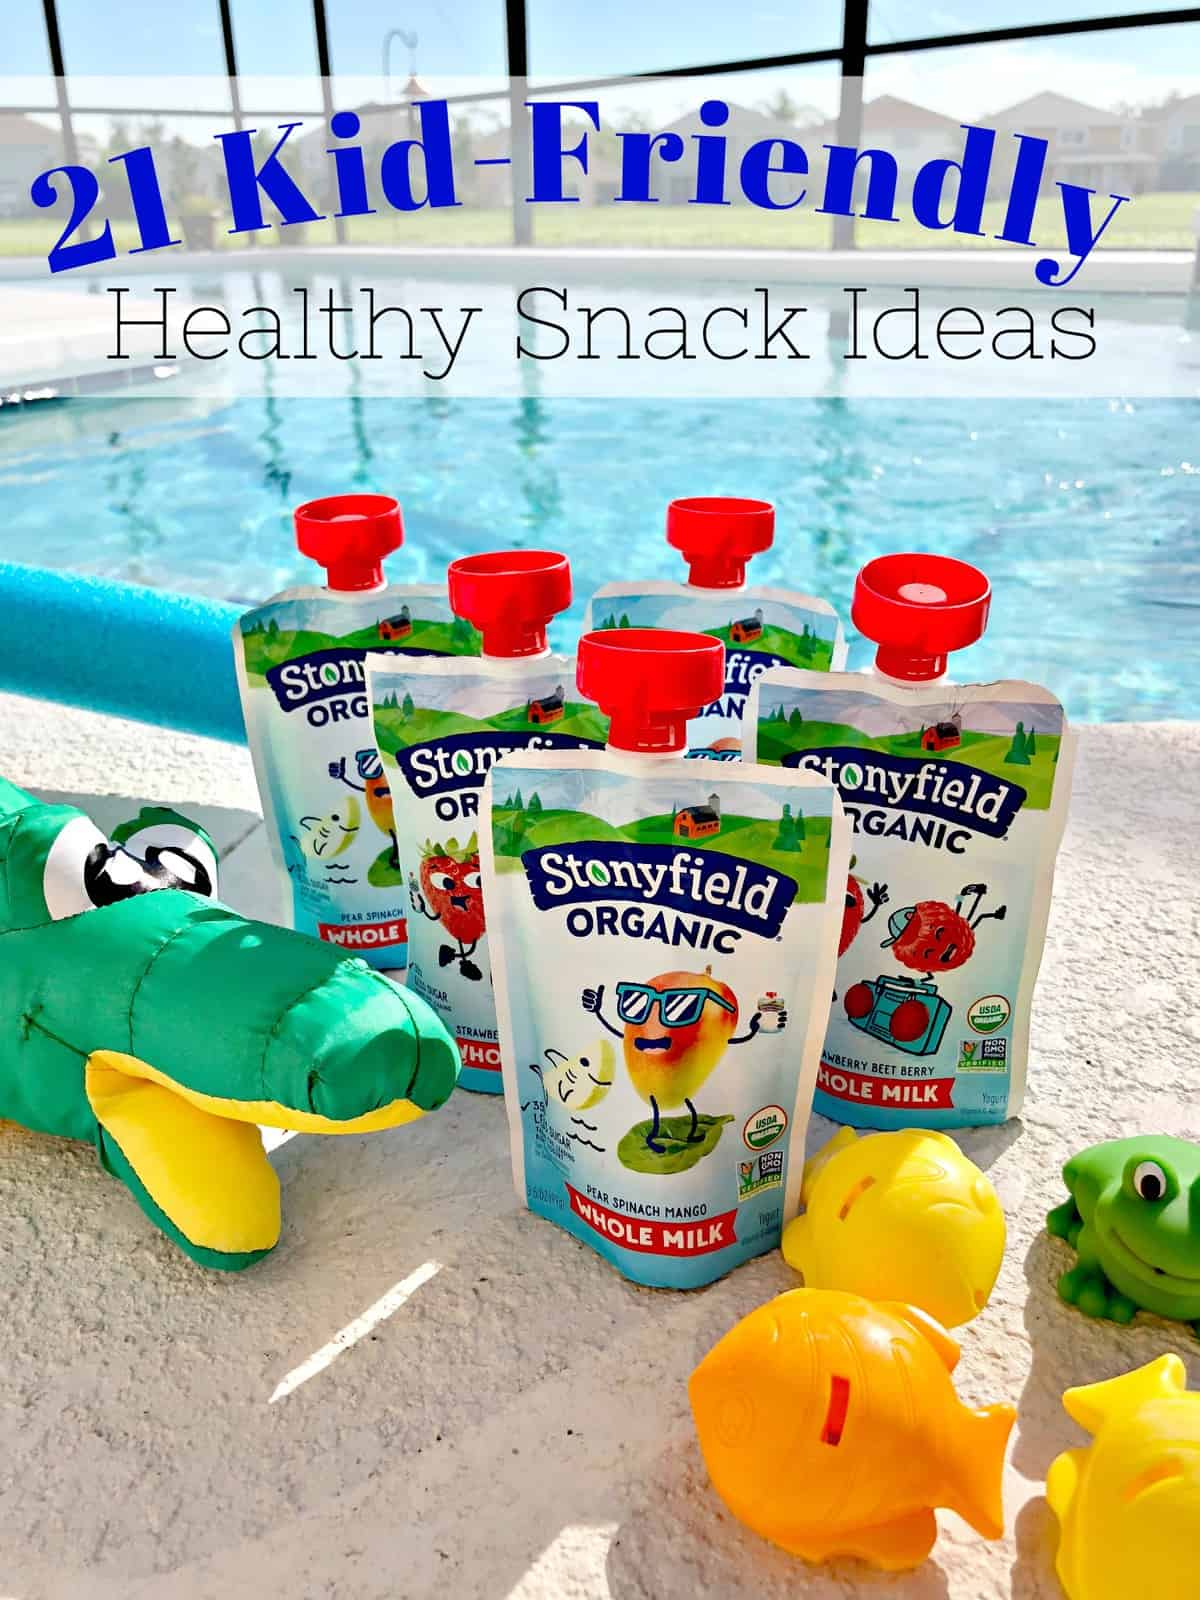 5 snack sized stoneyfield organic kid's squeeze packs next to pool toys by the pool with title text.